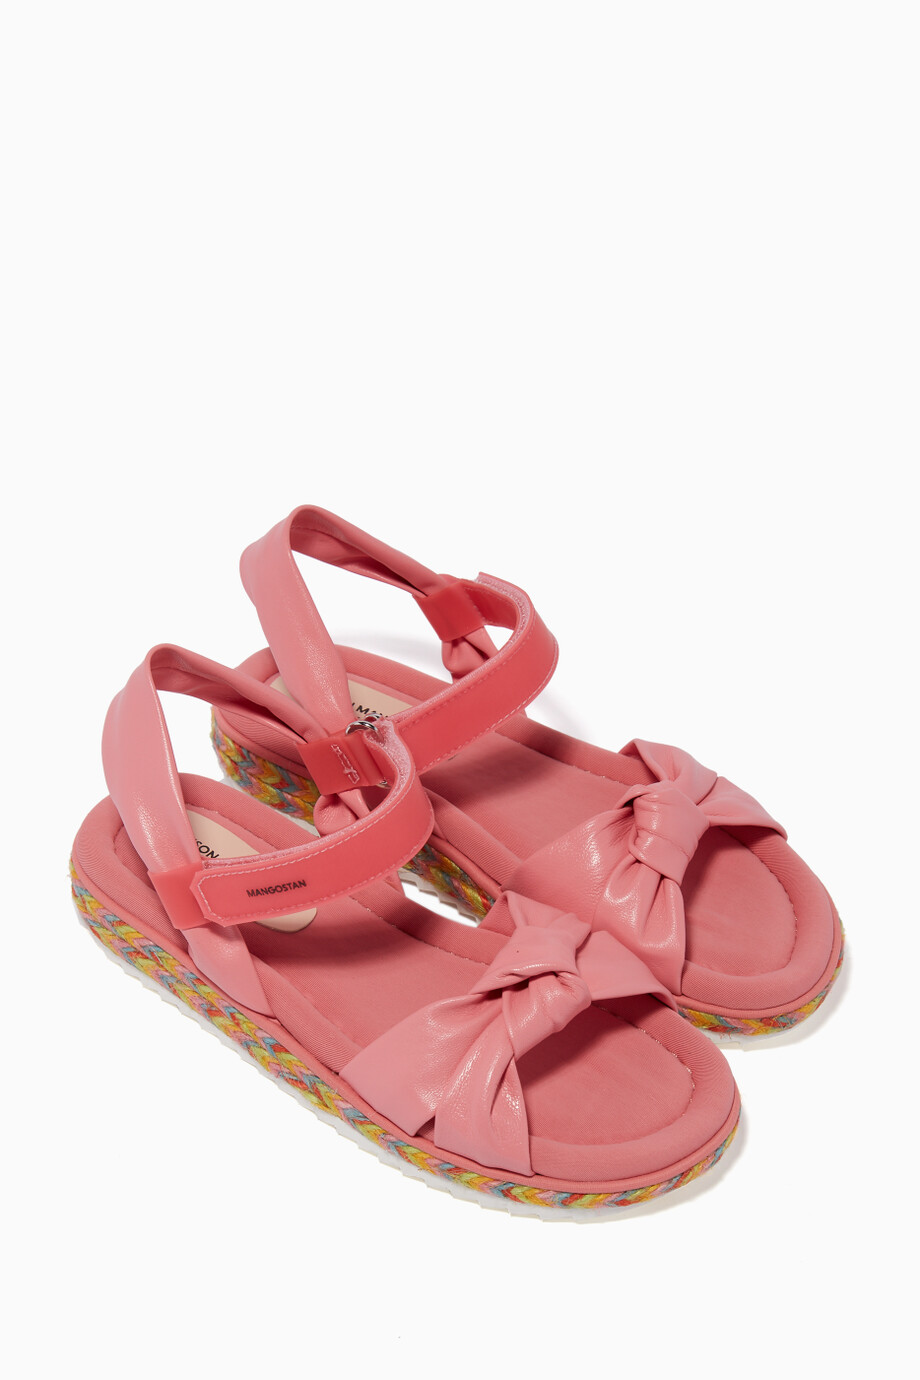 2ea47ee1a1b0 Shop Maison Mangostan Pink Abacate Bow Sandals for Kids